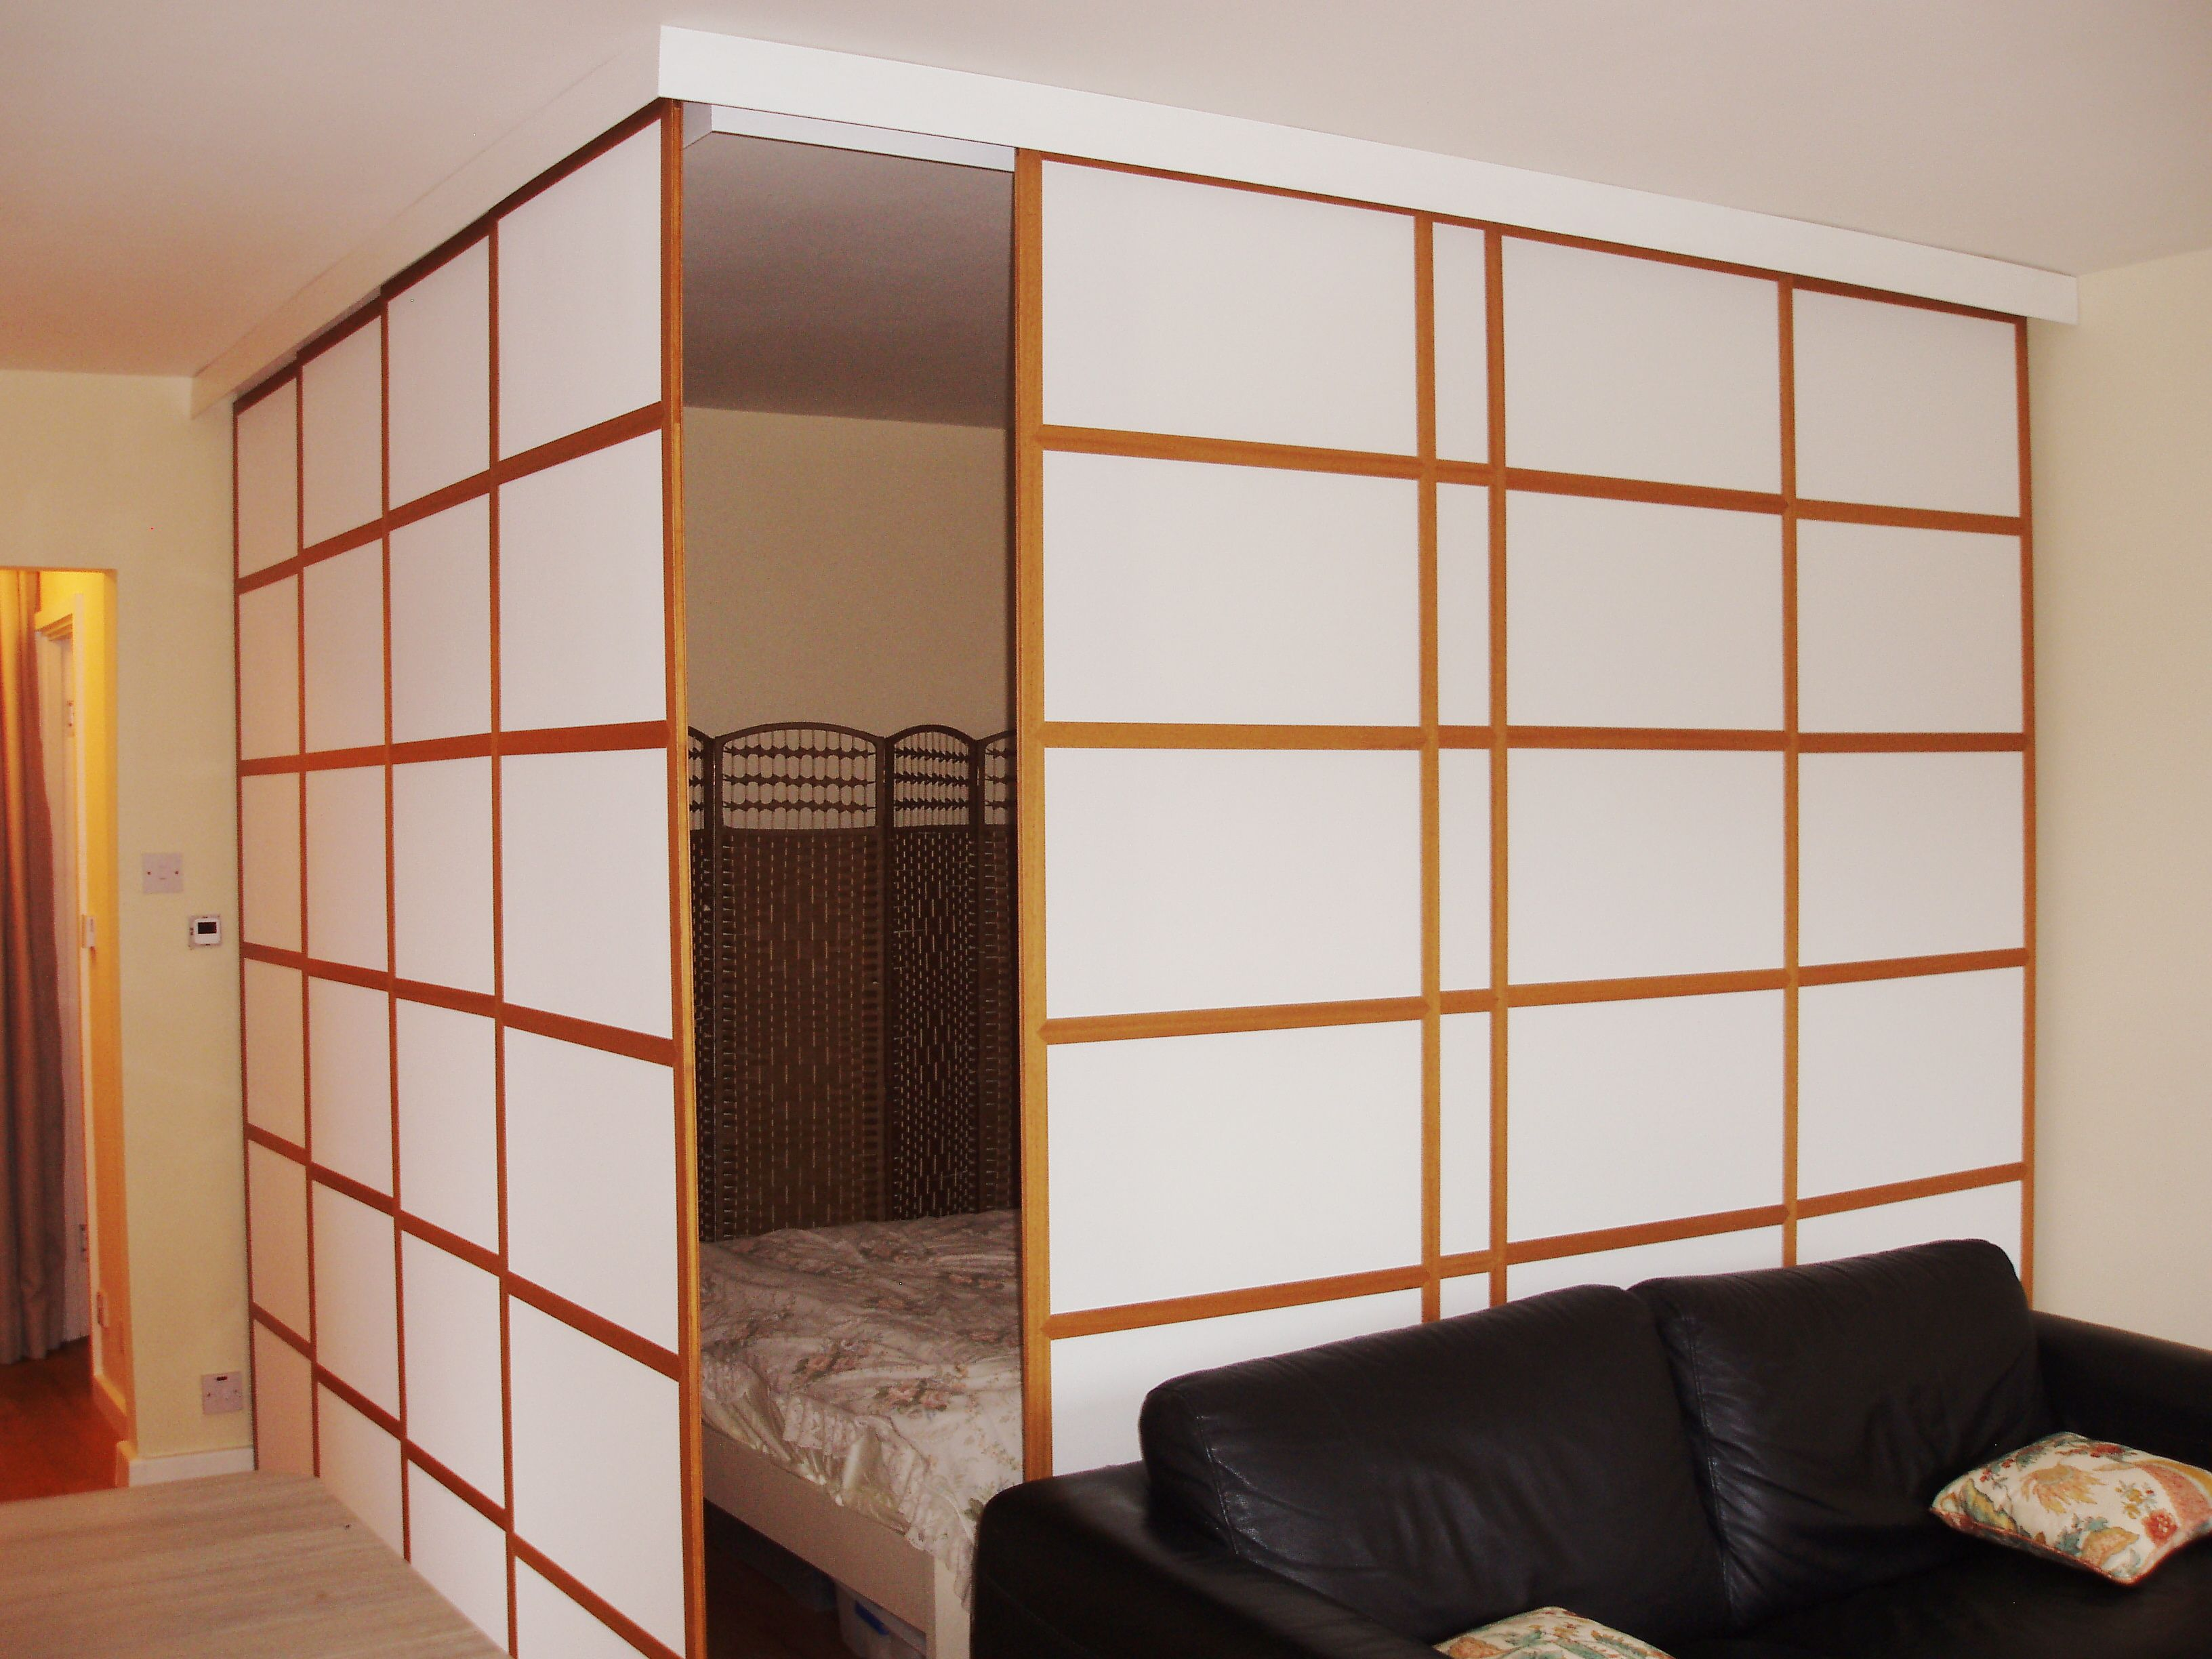 Japanese Sliding Panels Shoji Panels Blinds Supplied All Over The Uk Fabric Room Dividers Wooden Room Dividers Glass Room Divider